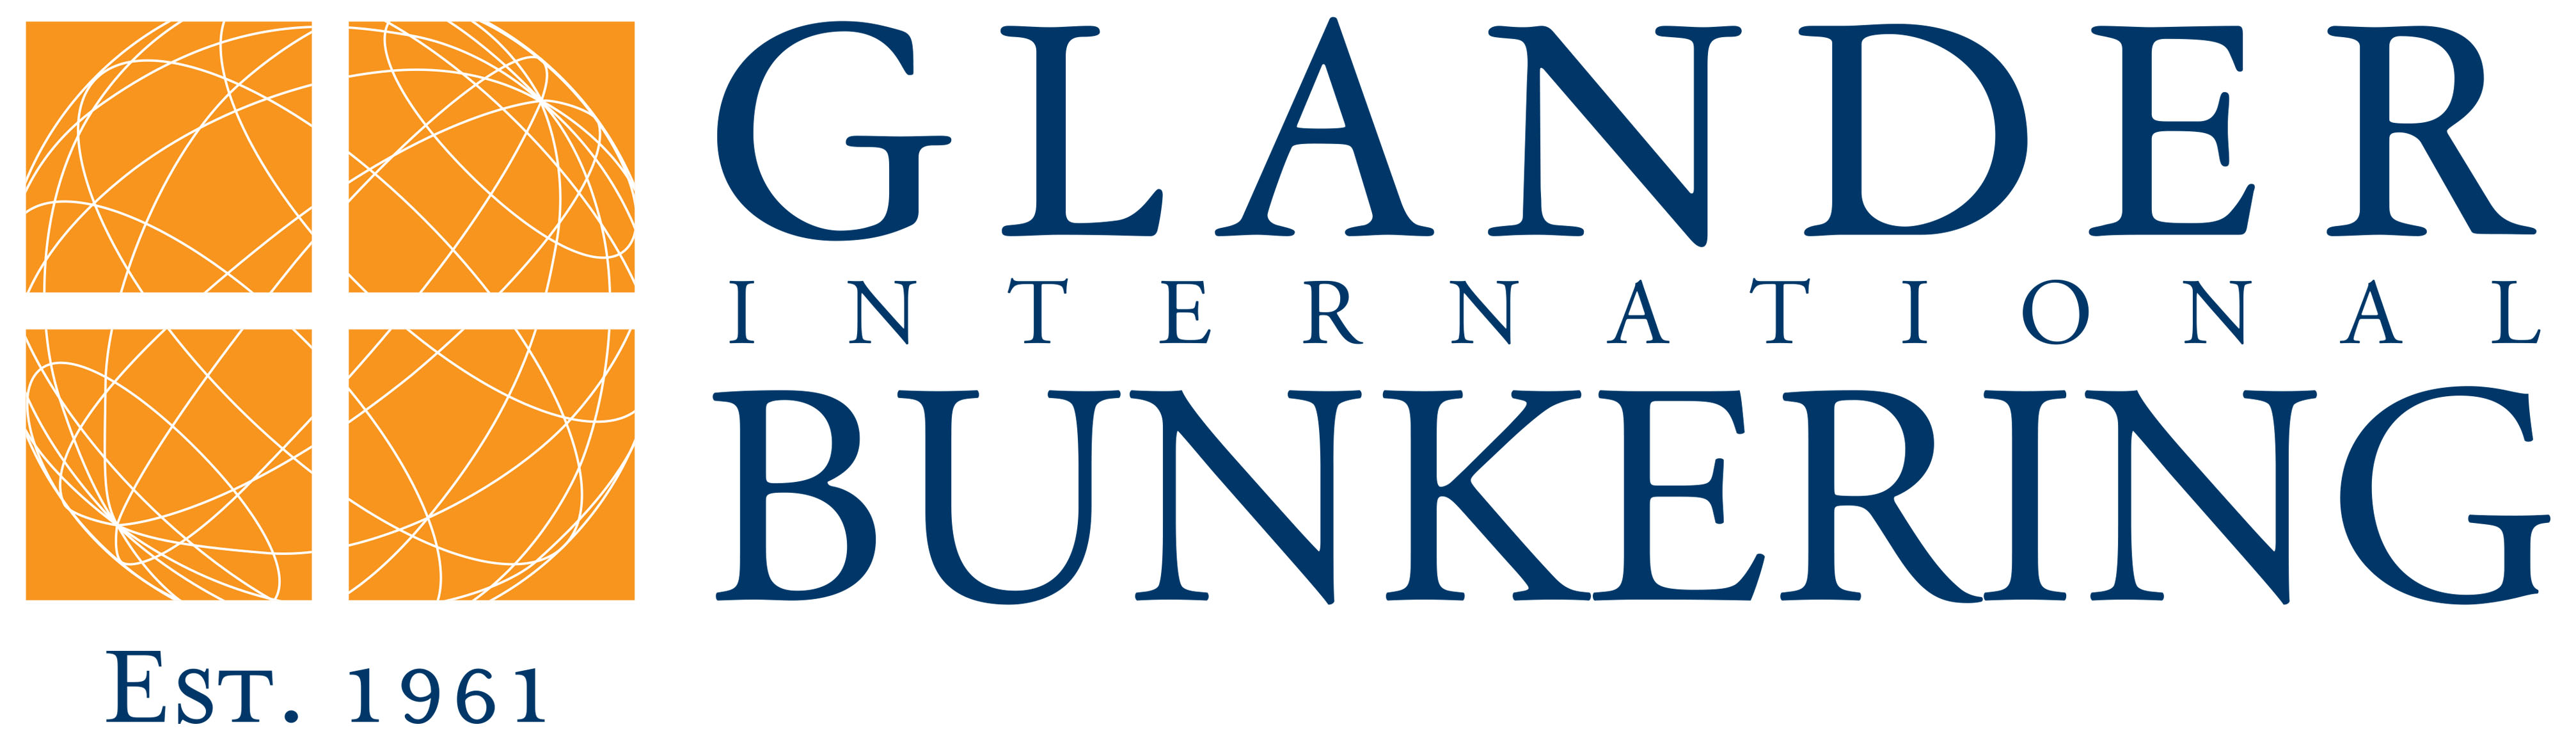 Glander International Bunkering Logo